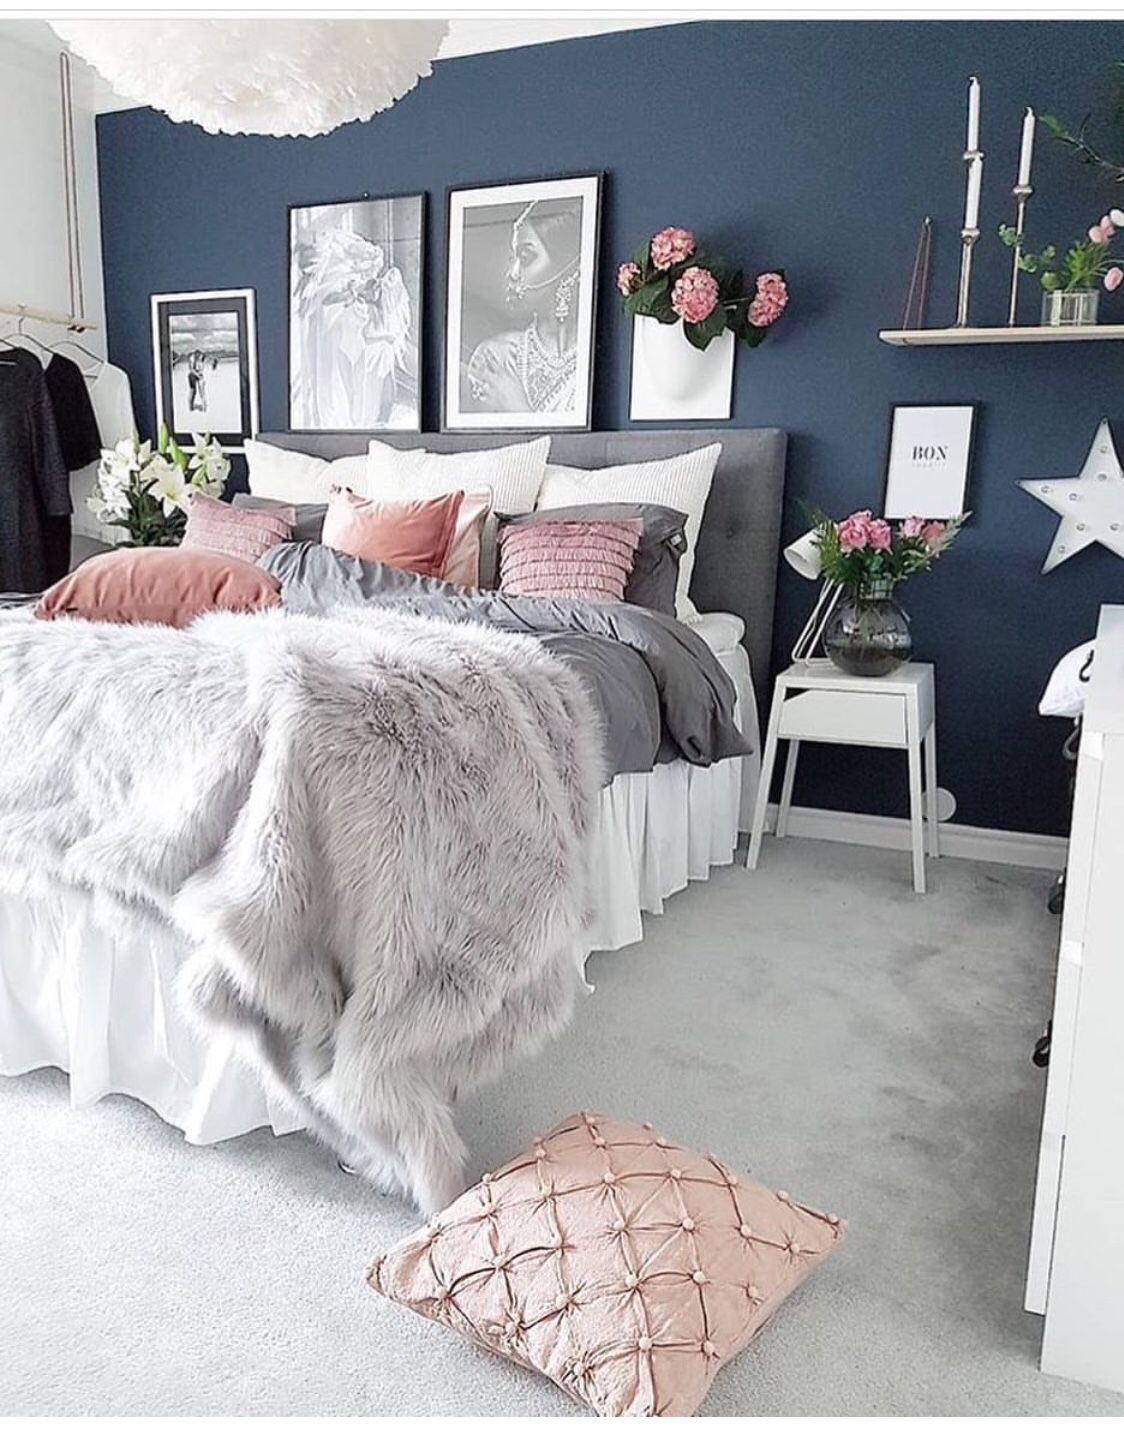 Love This The Colors Are Perfect And The Black And White Art Is Beautiful Room Decor Bedroom Bedroom Decor Home Bedroom